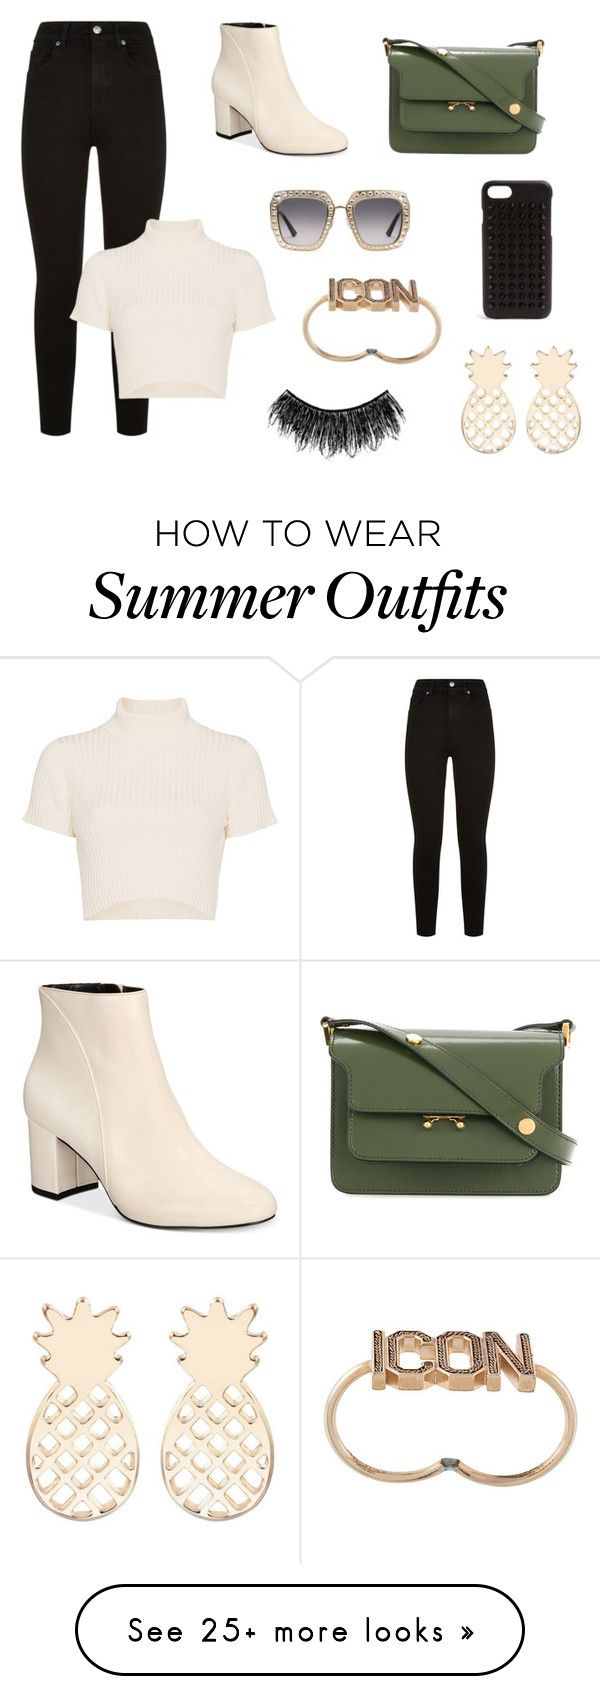 """0f1f21da44e Summer Outfits   """"casual modern outfit"""" by lena-topouzi on Polyvore  featuring 7 For All Mankind"""